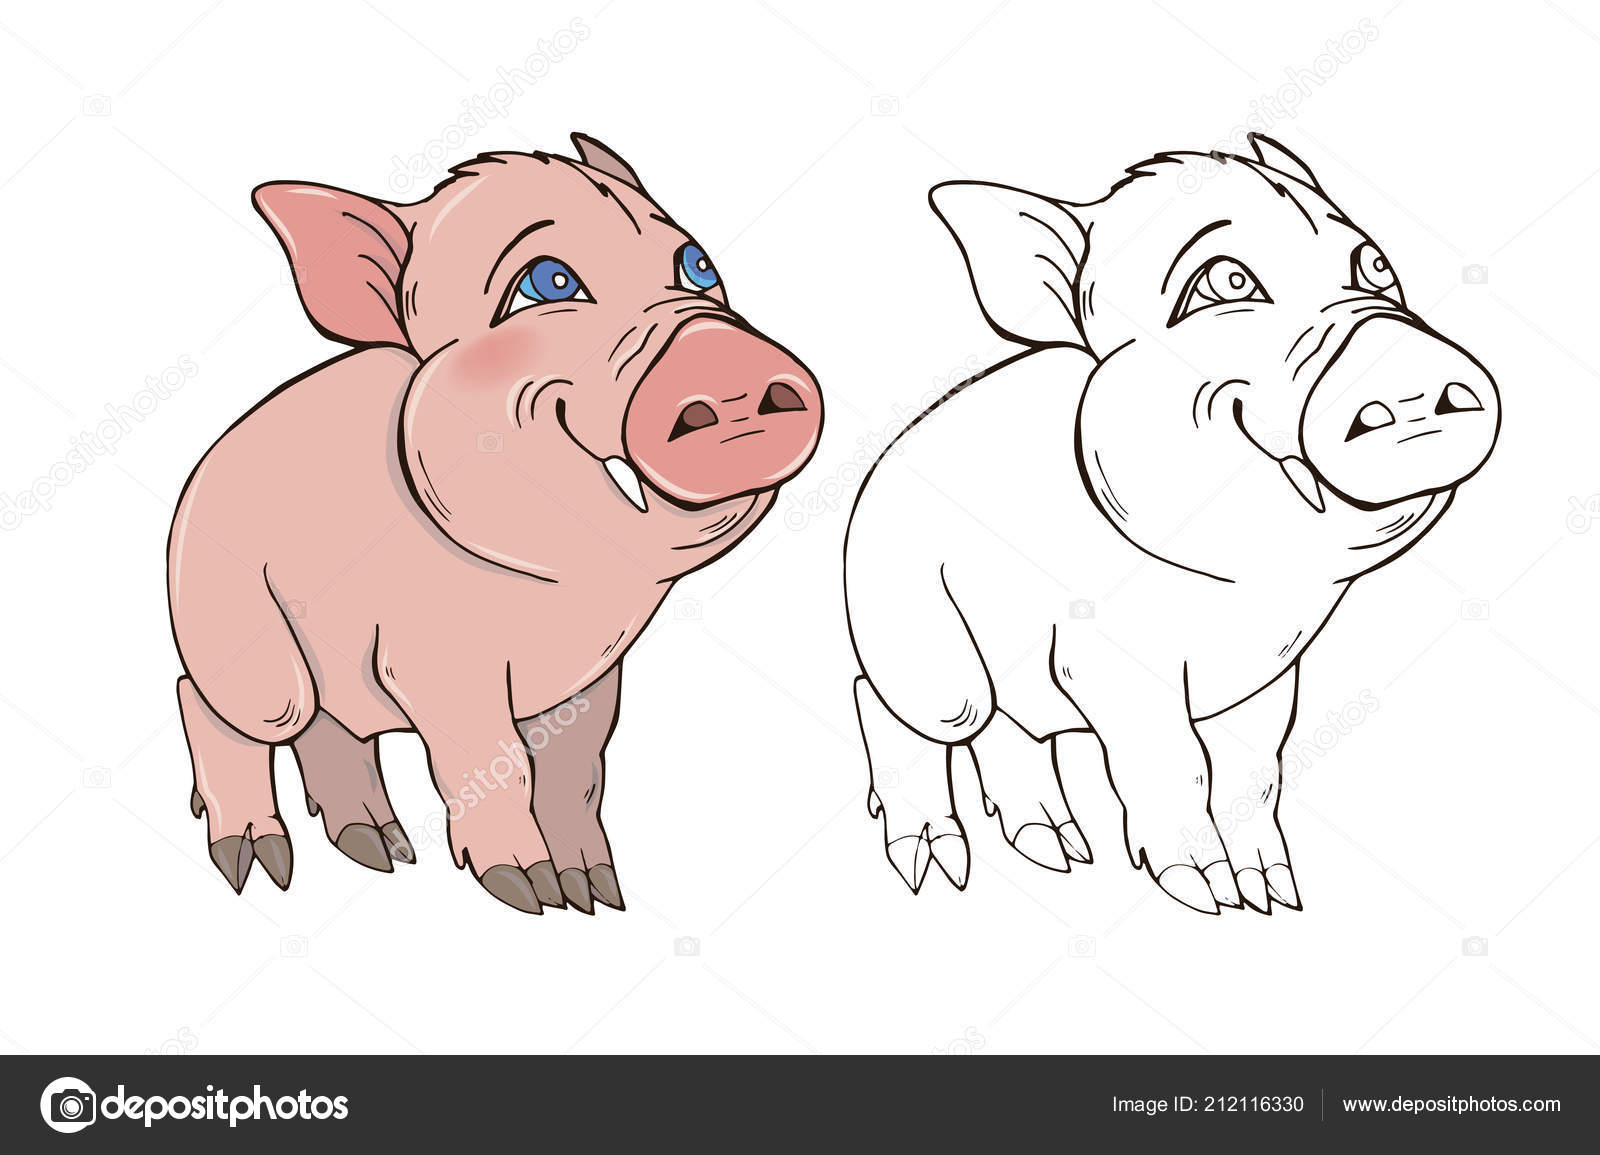 Coloring Page For Pig Pig coloring pages Free Coloring PagesPig ...